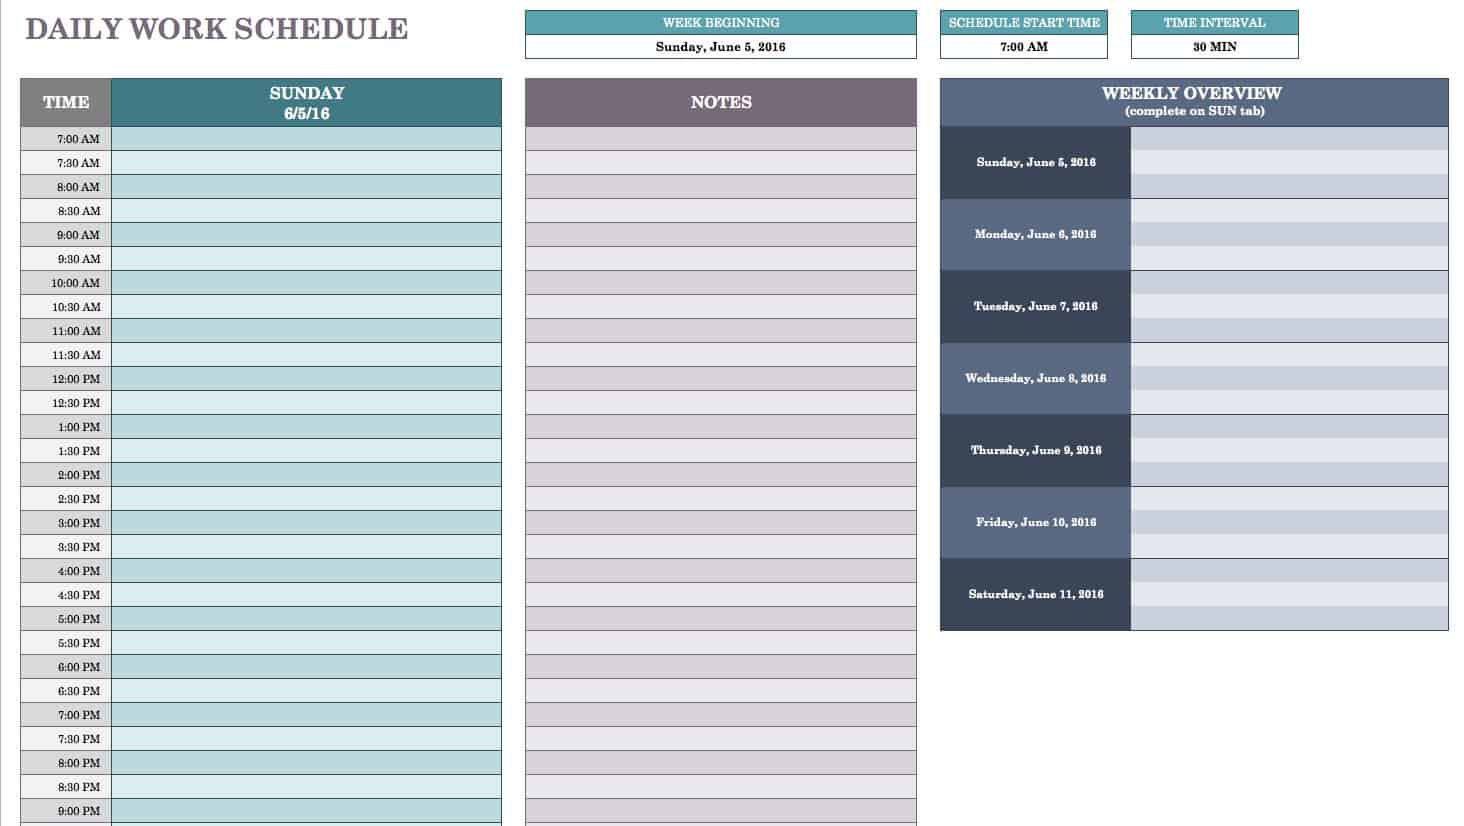 Marvelous Daily Work Schedule Template